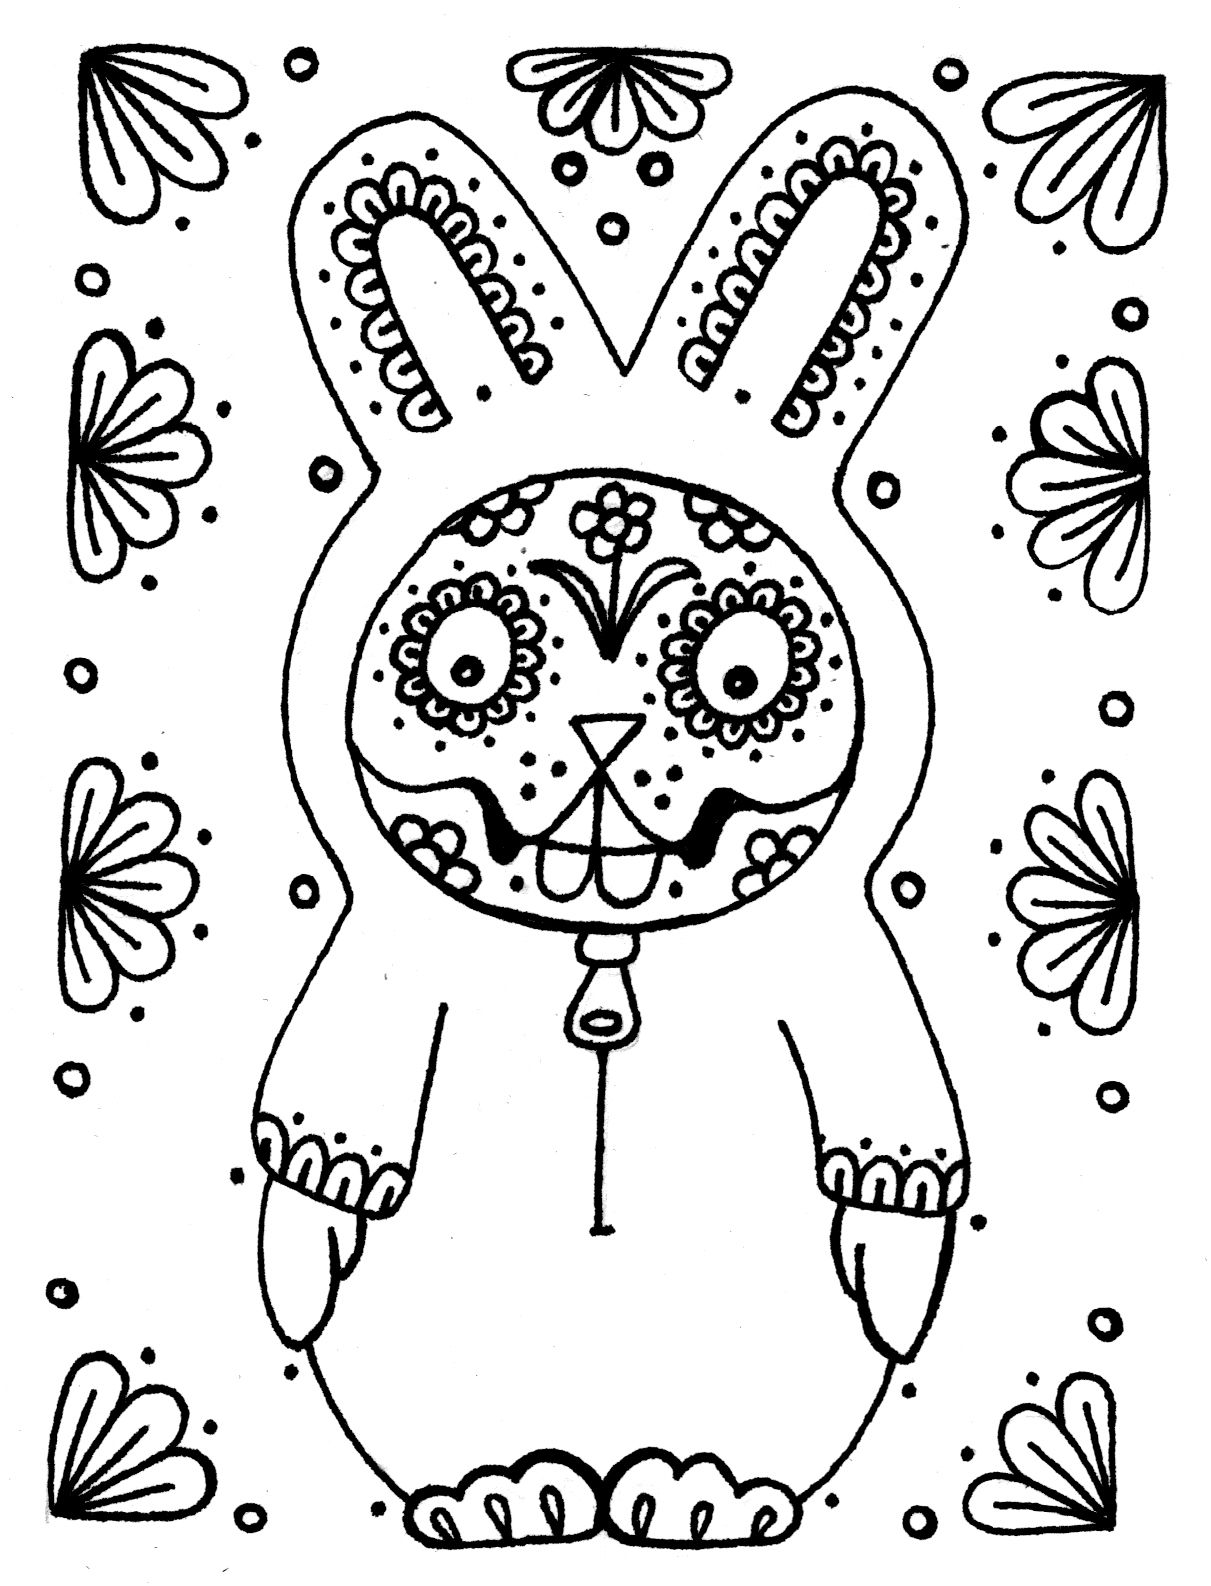 Dia De Los Muertos Coloring Pages | Wenchkin\'s coloring pages - Dia ...